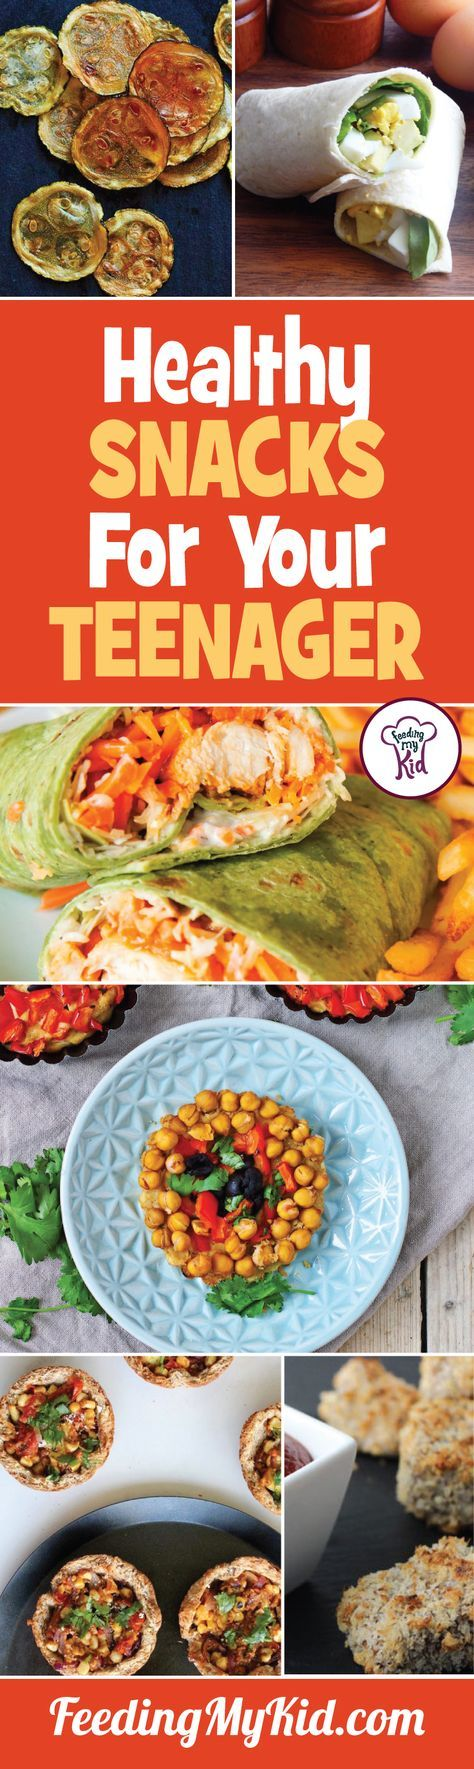 This is a must pin! We put together this list of healthy snacks for teens that your kids will love to eat. These recipes are sure to please your teens!  Feeding My Kid is filled with all the information you need about how to raise your kids, from healthy